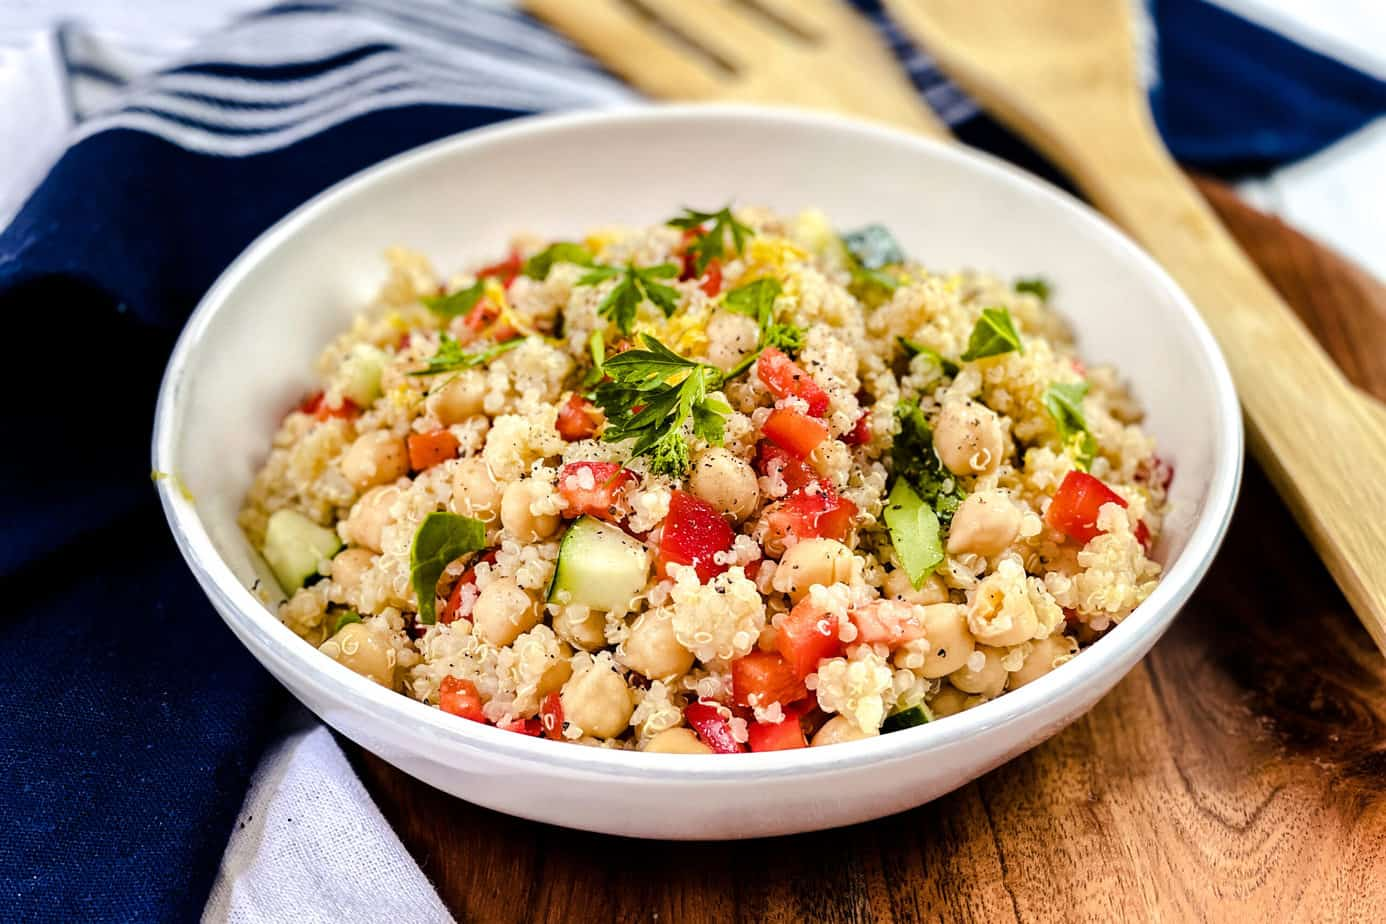 Quinoa Salad in a White Bowl with Wood Service